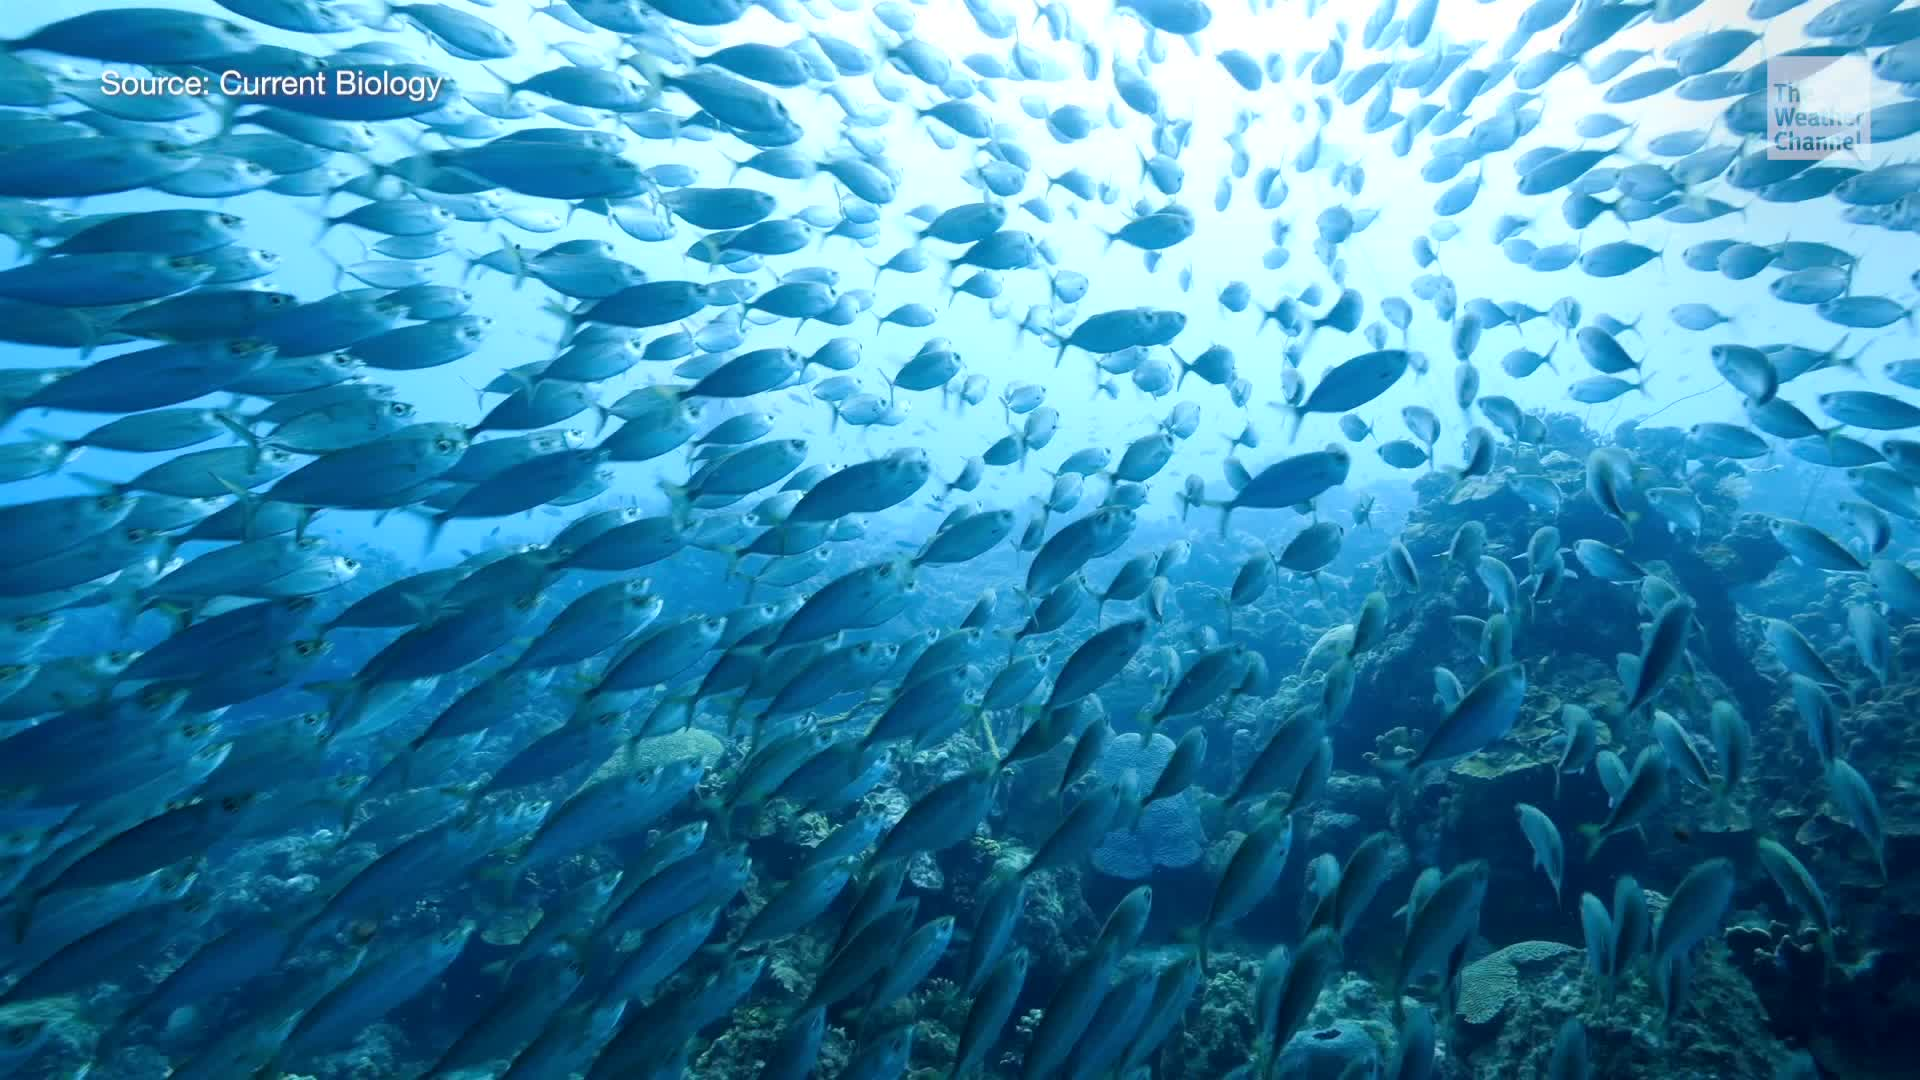 Warming oceans are causing marine species to move poleward. Here's why that's a problem.